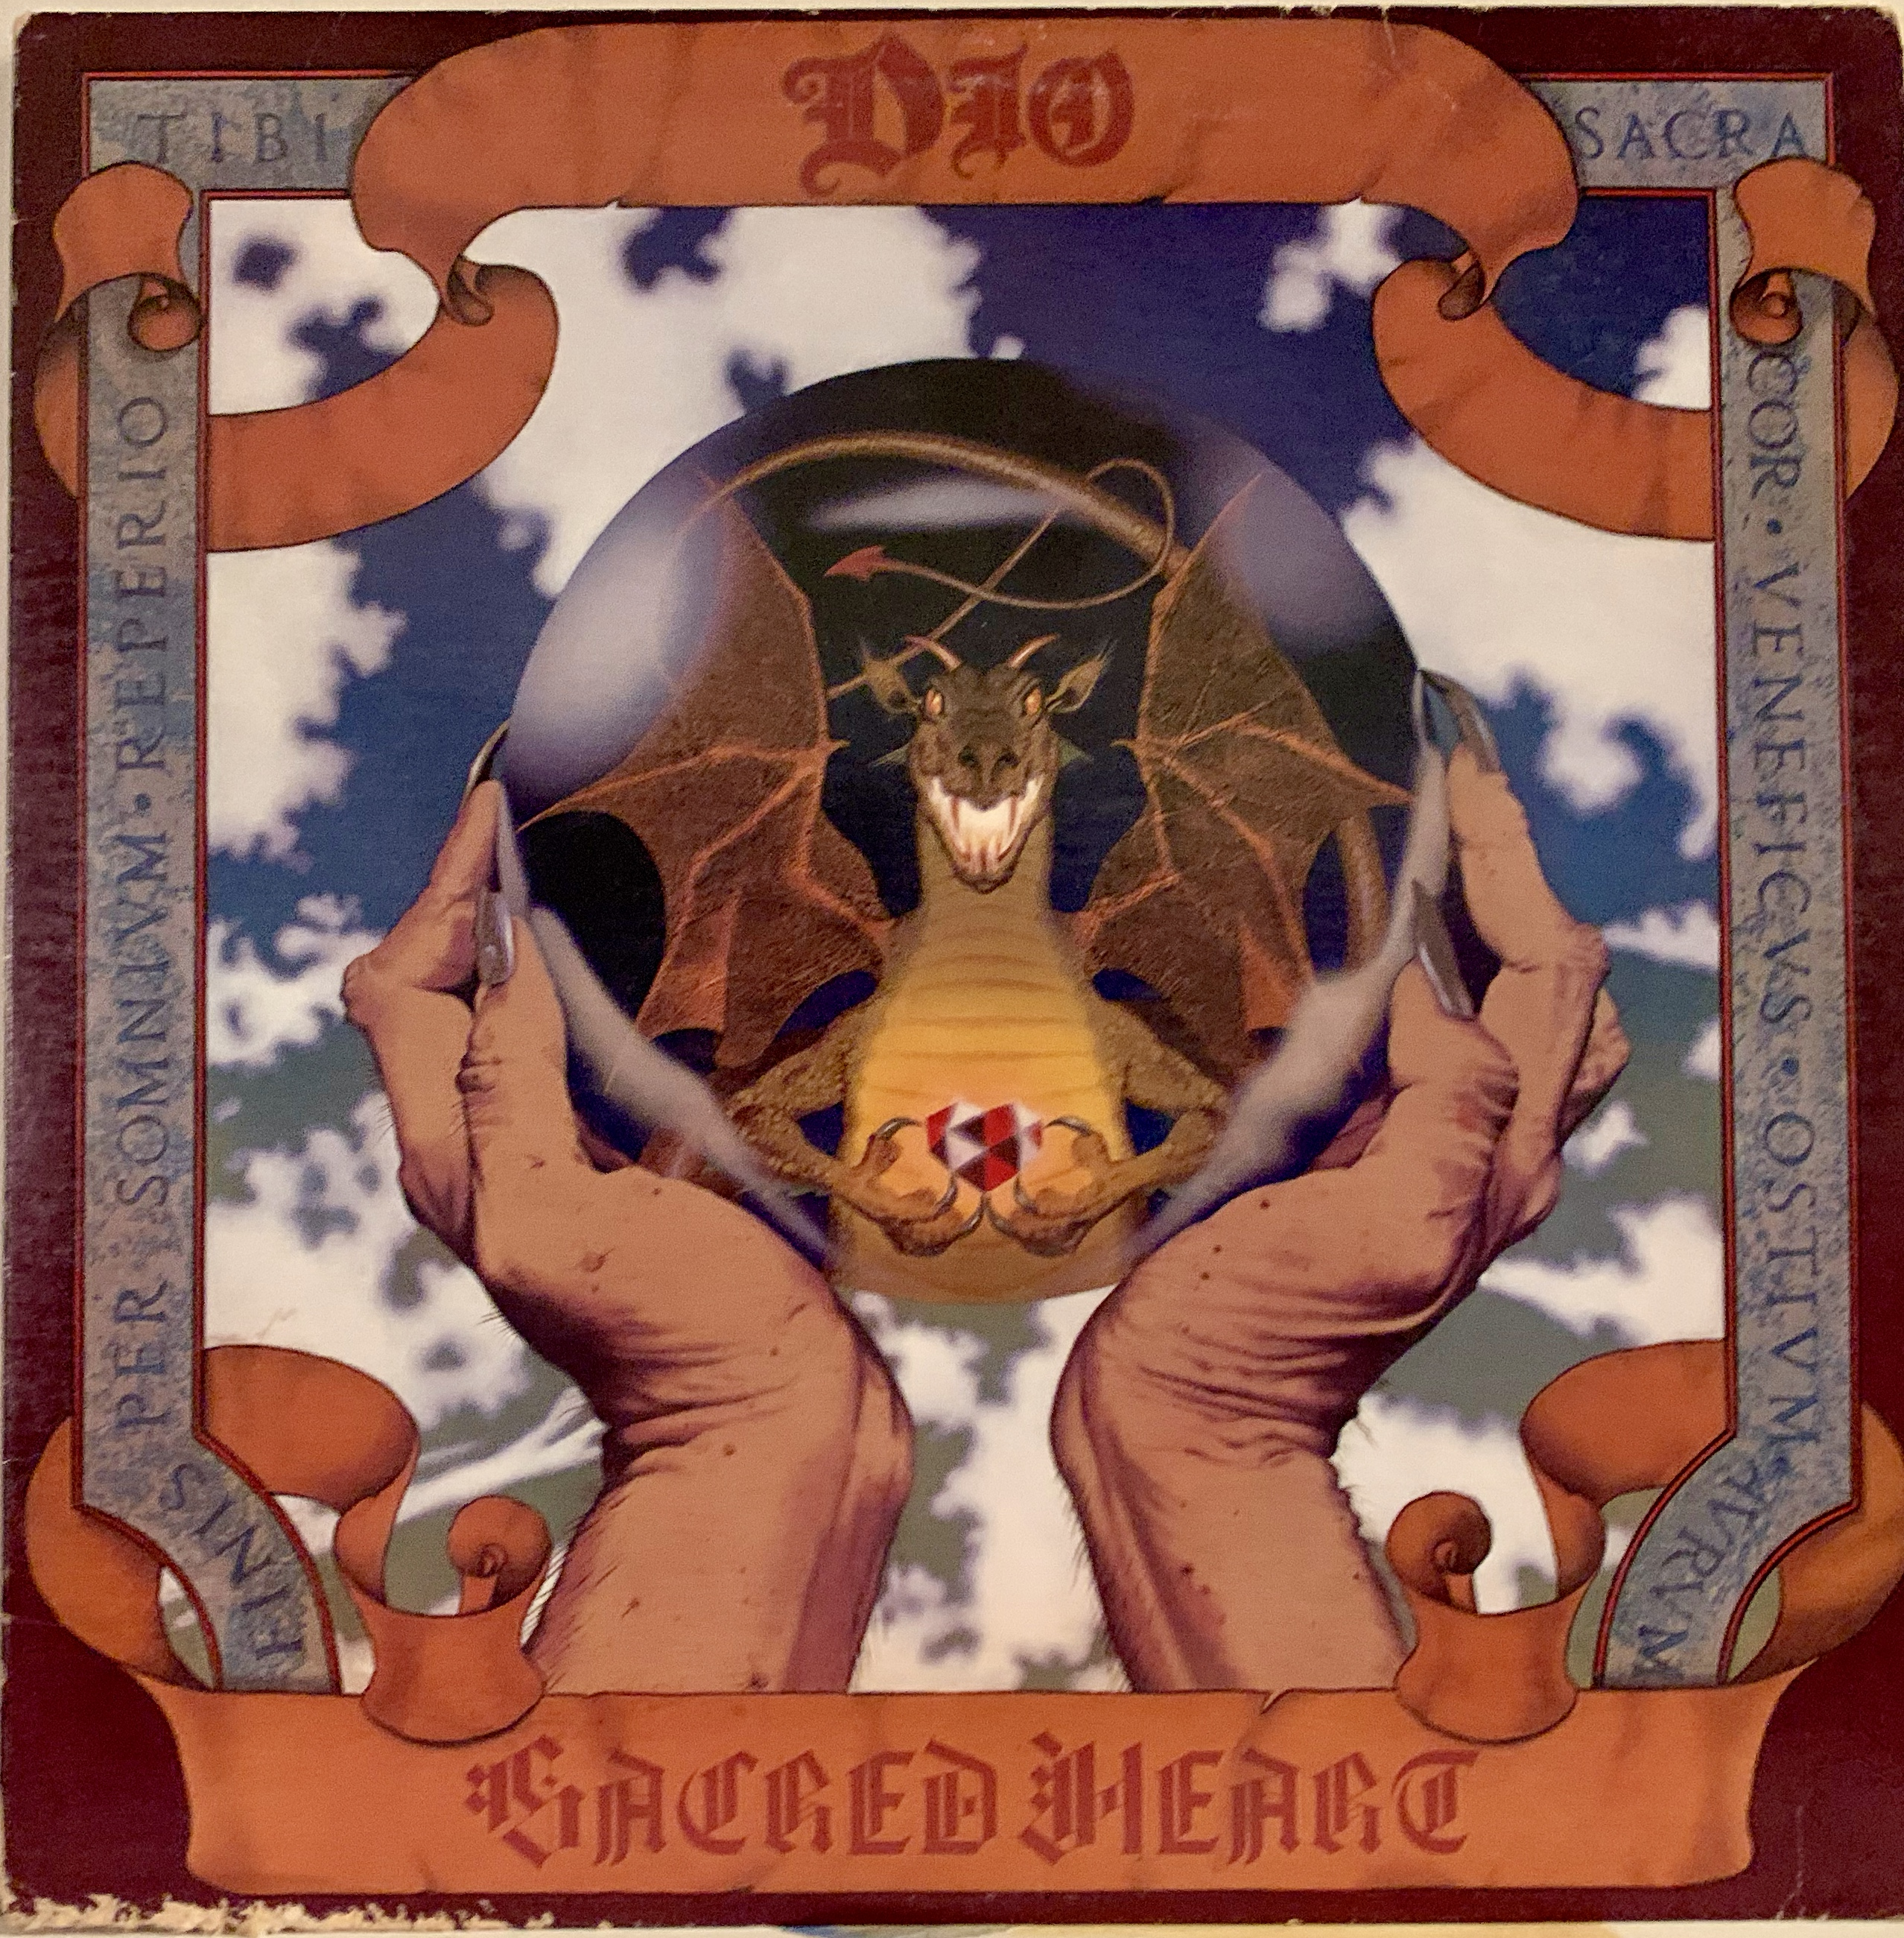 DIO SACRED HEART ALBUM